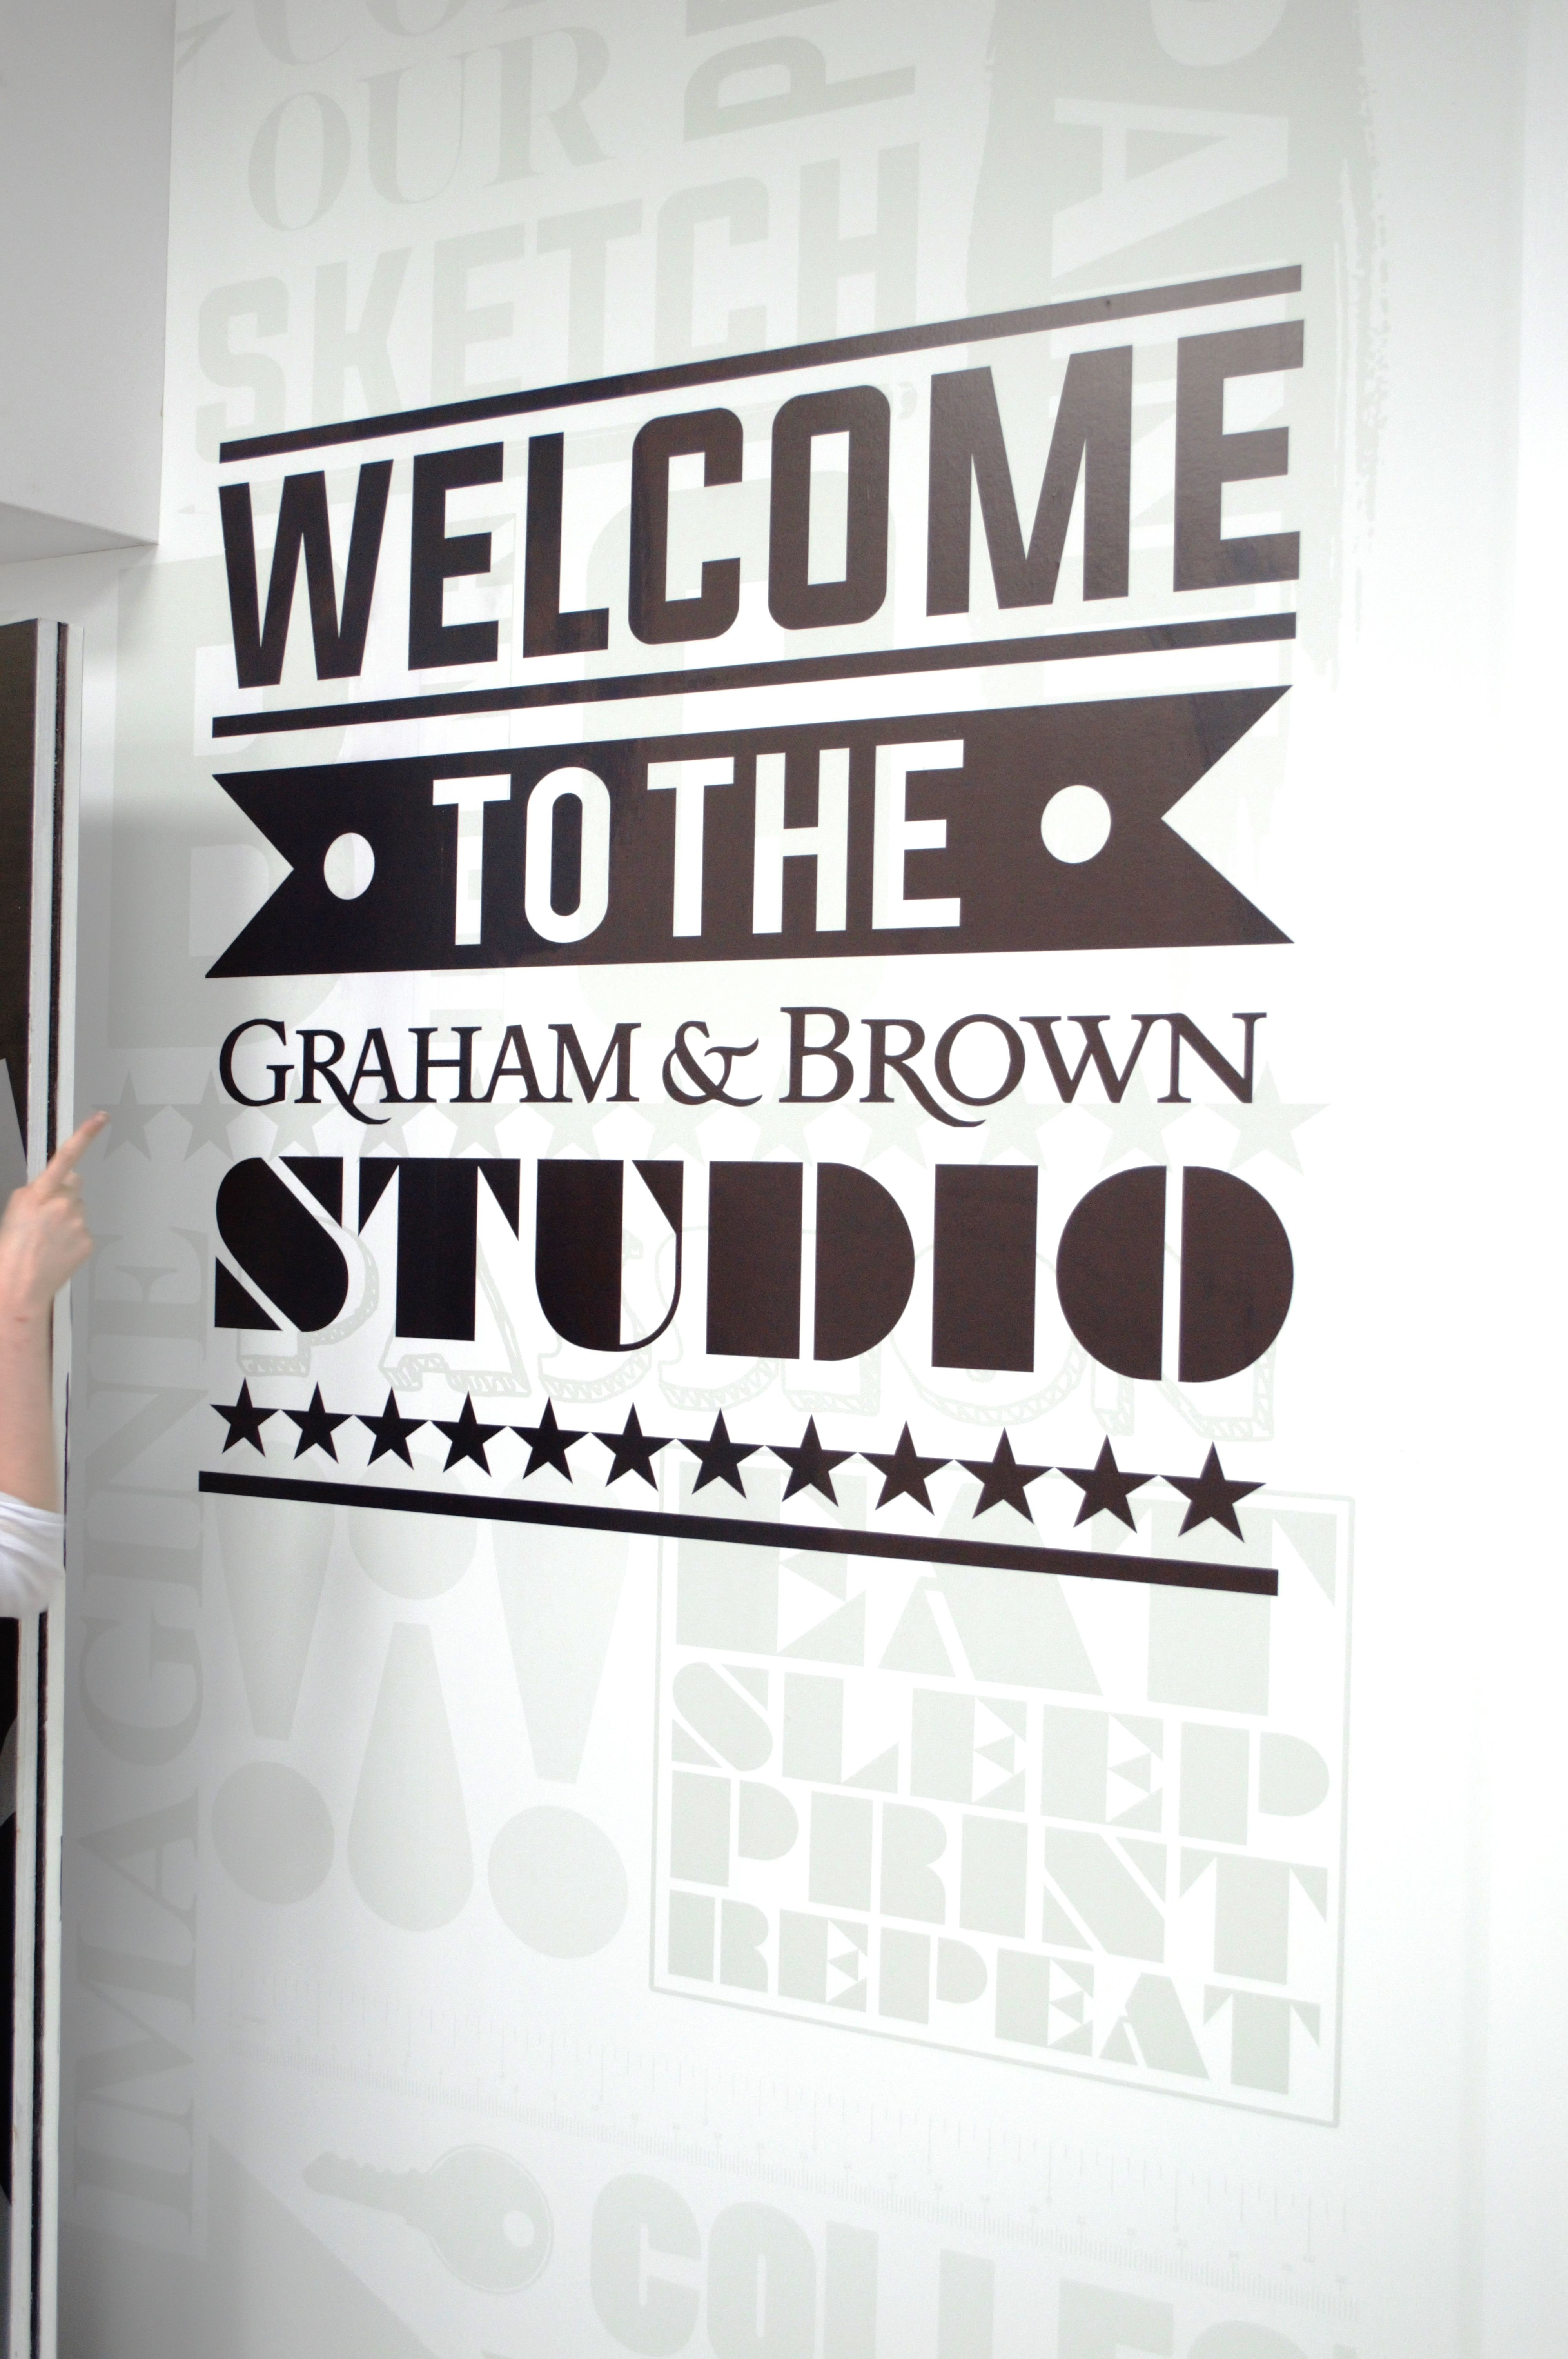 Graham & Brown Office Design